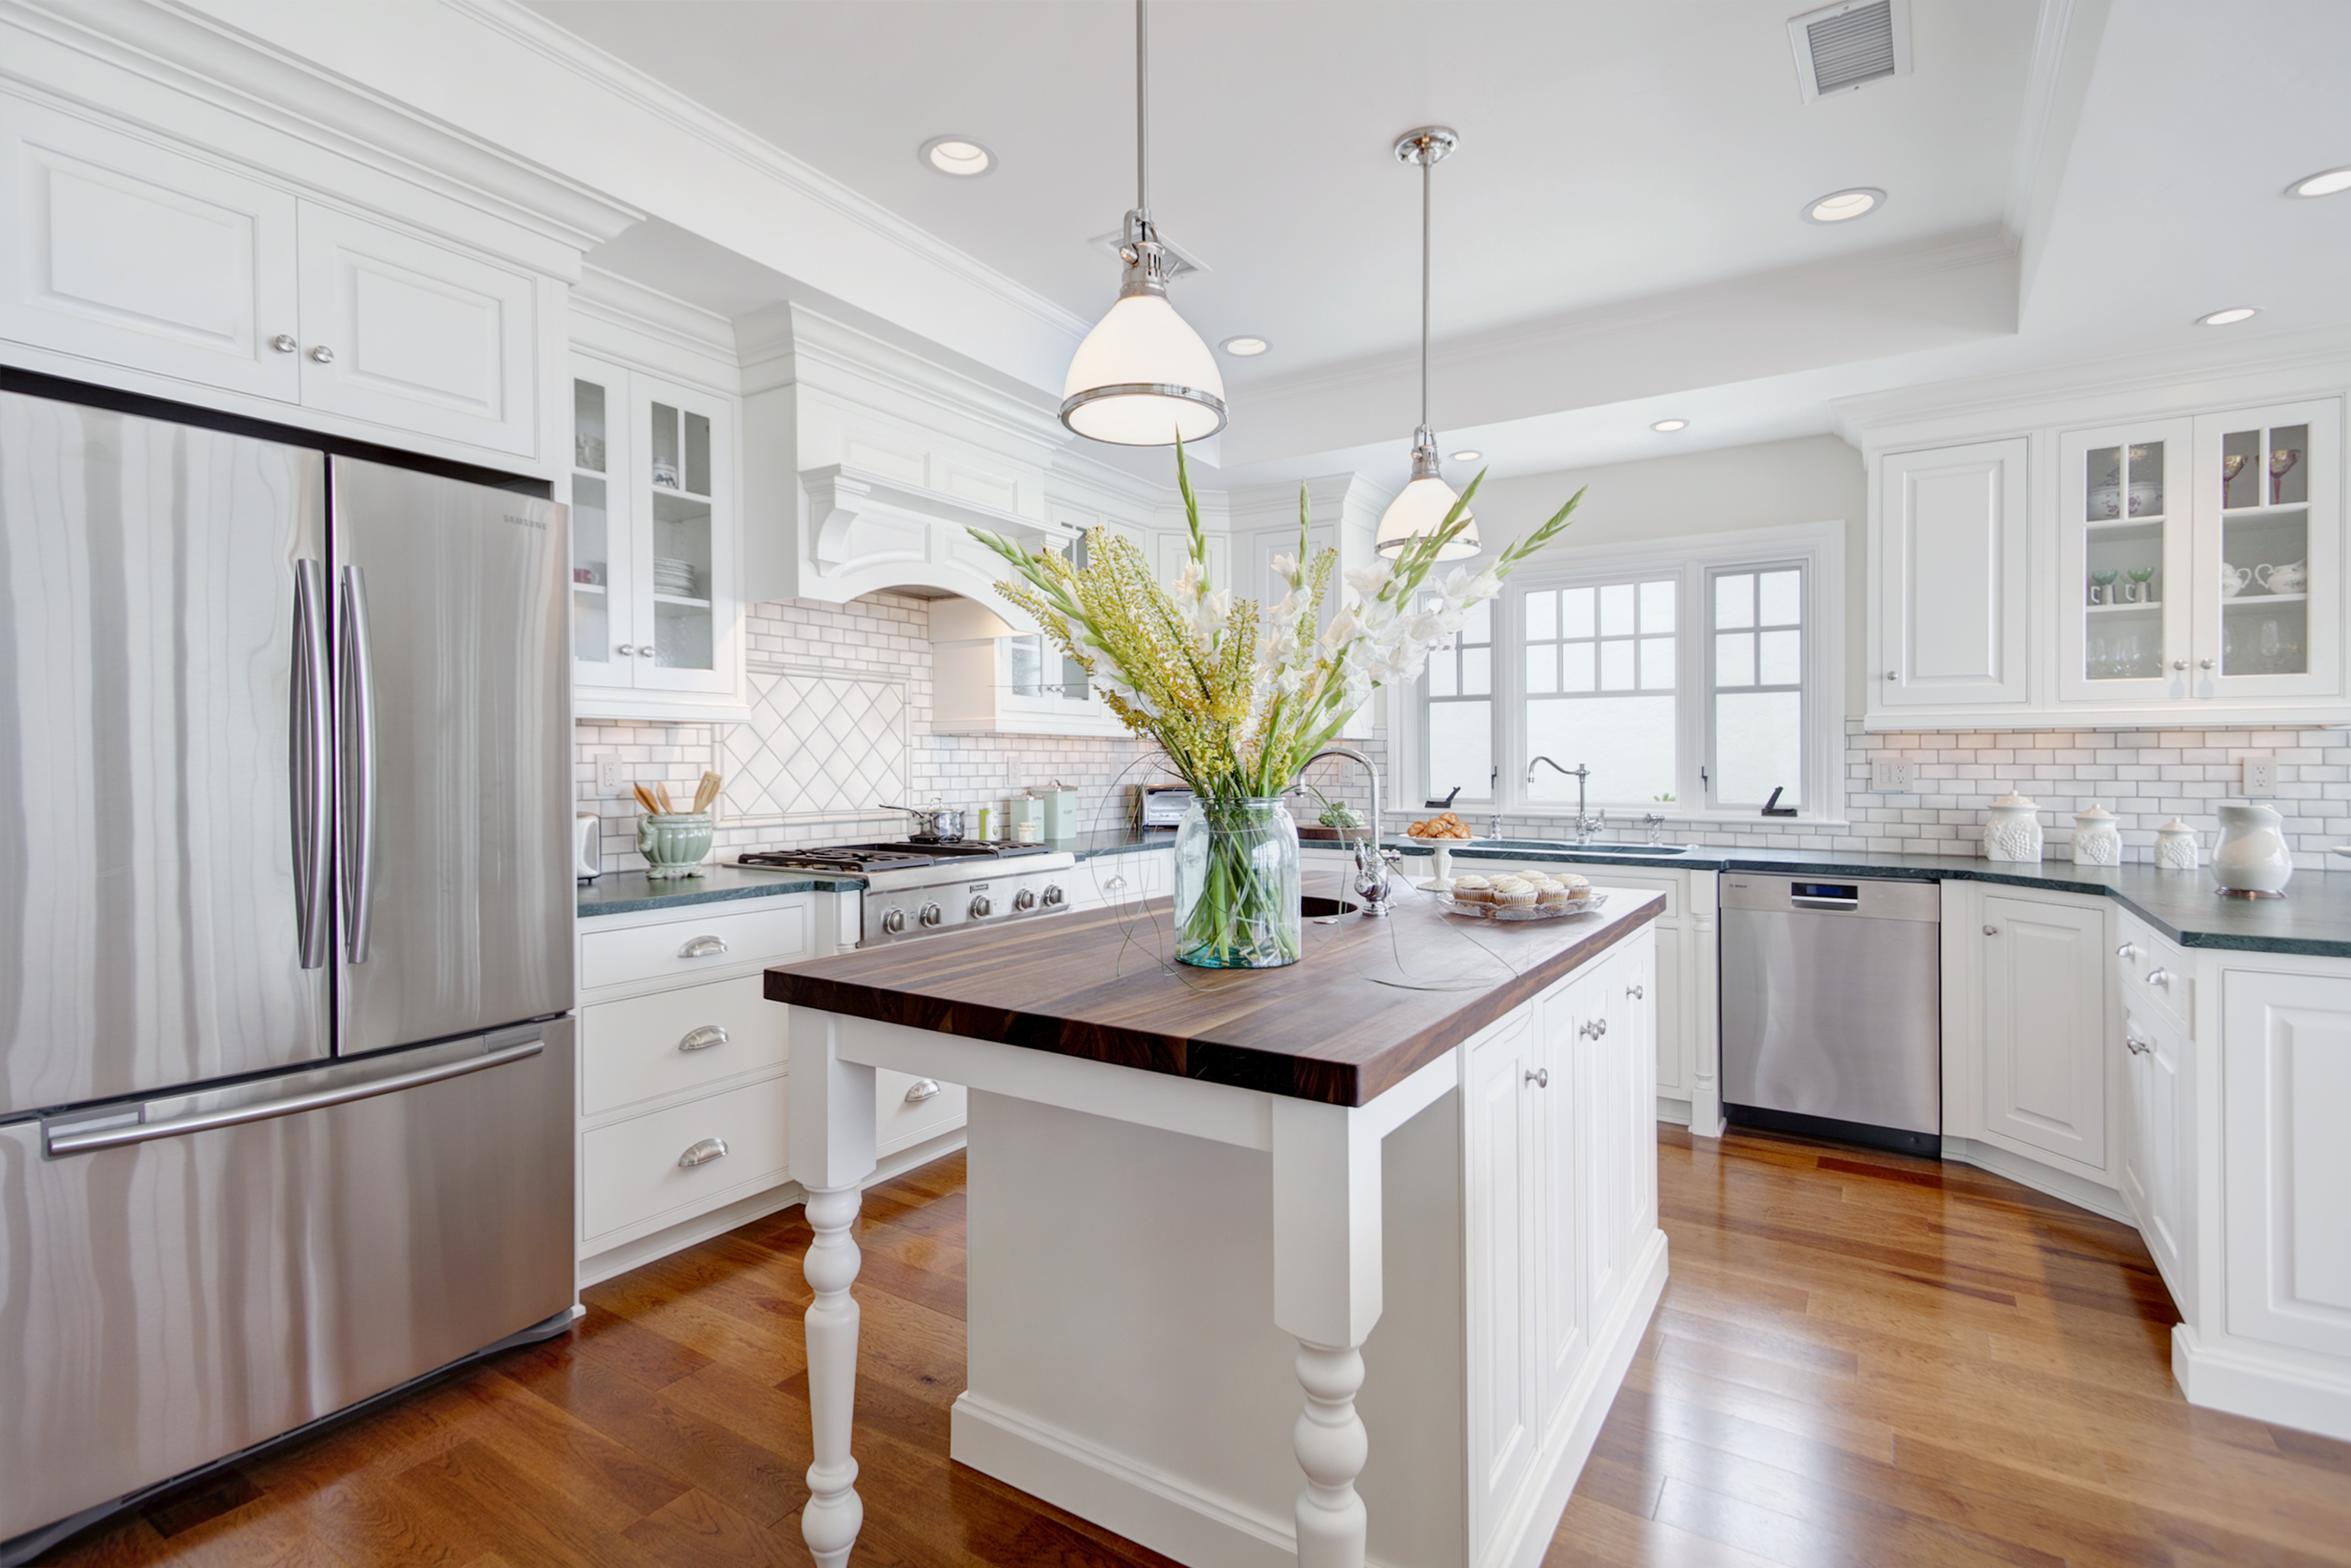 beautiful kitchen cabinets cost per foot kitchens are the center of home staceybryant